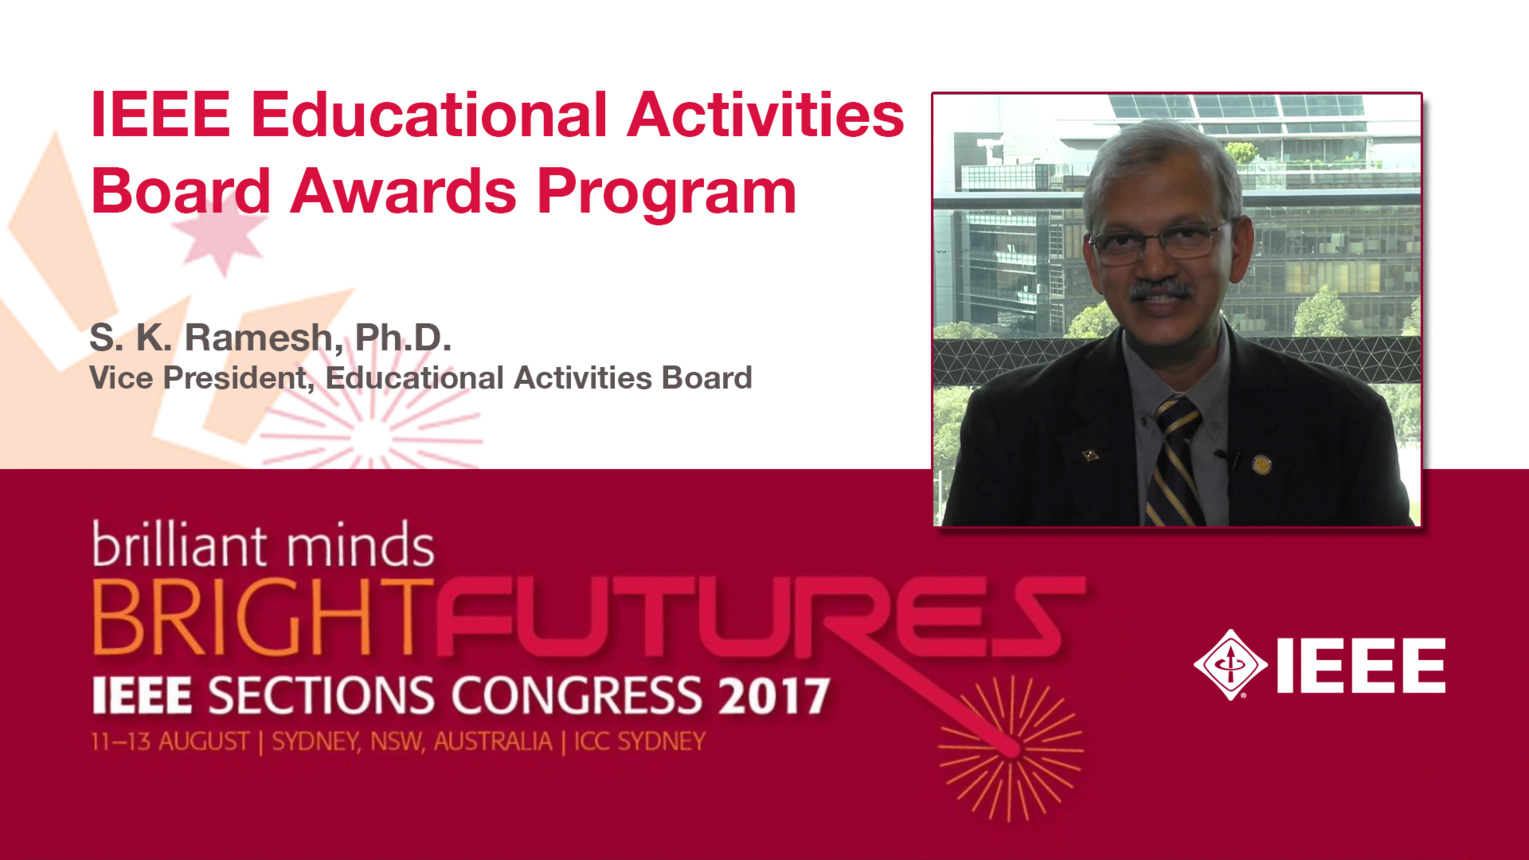 S.K. Ramesh: IEEE Educational Activities Board Awards Program - Studio Tech Talks: Sections Congress 2017